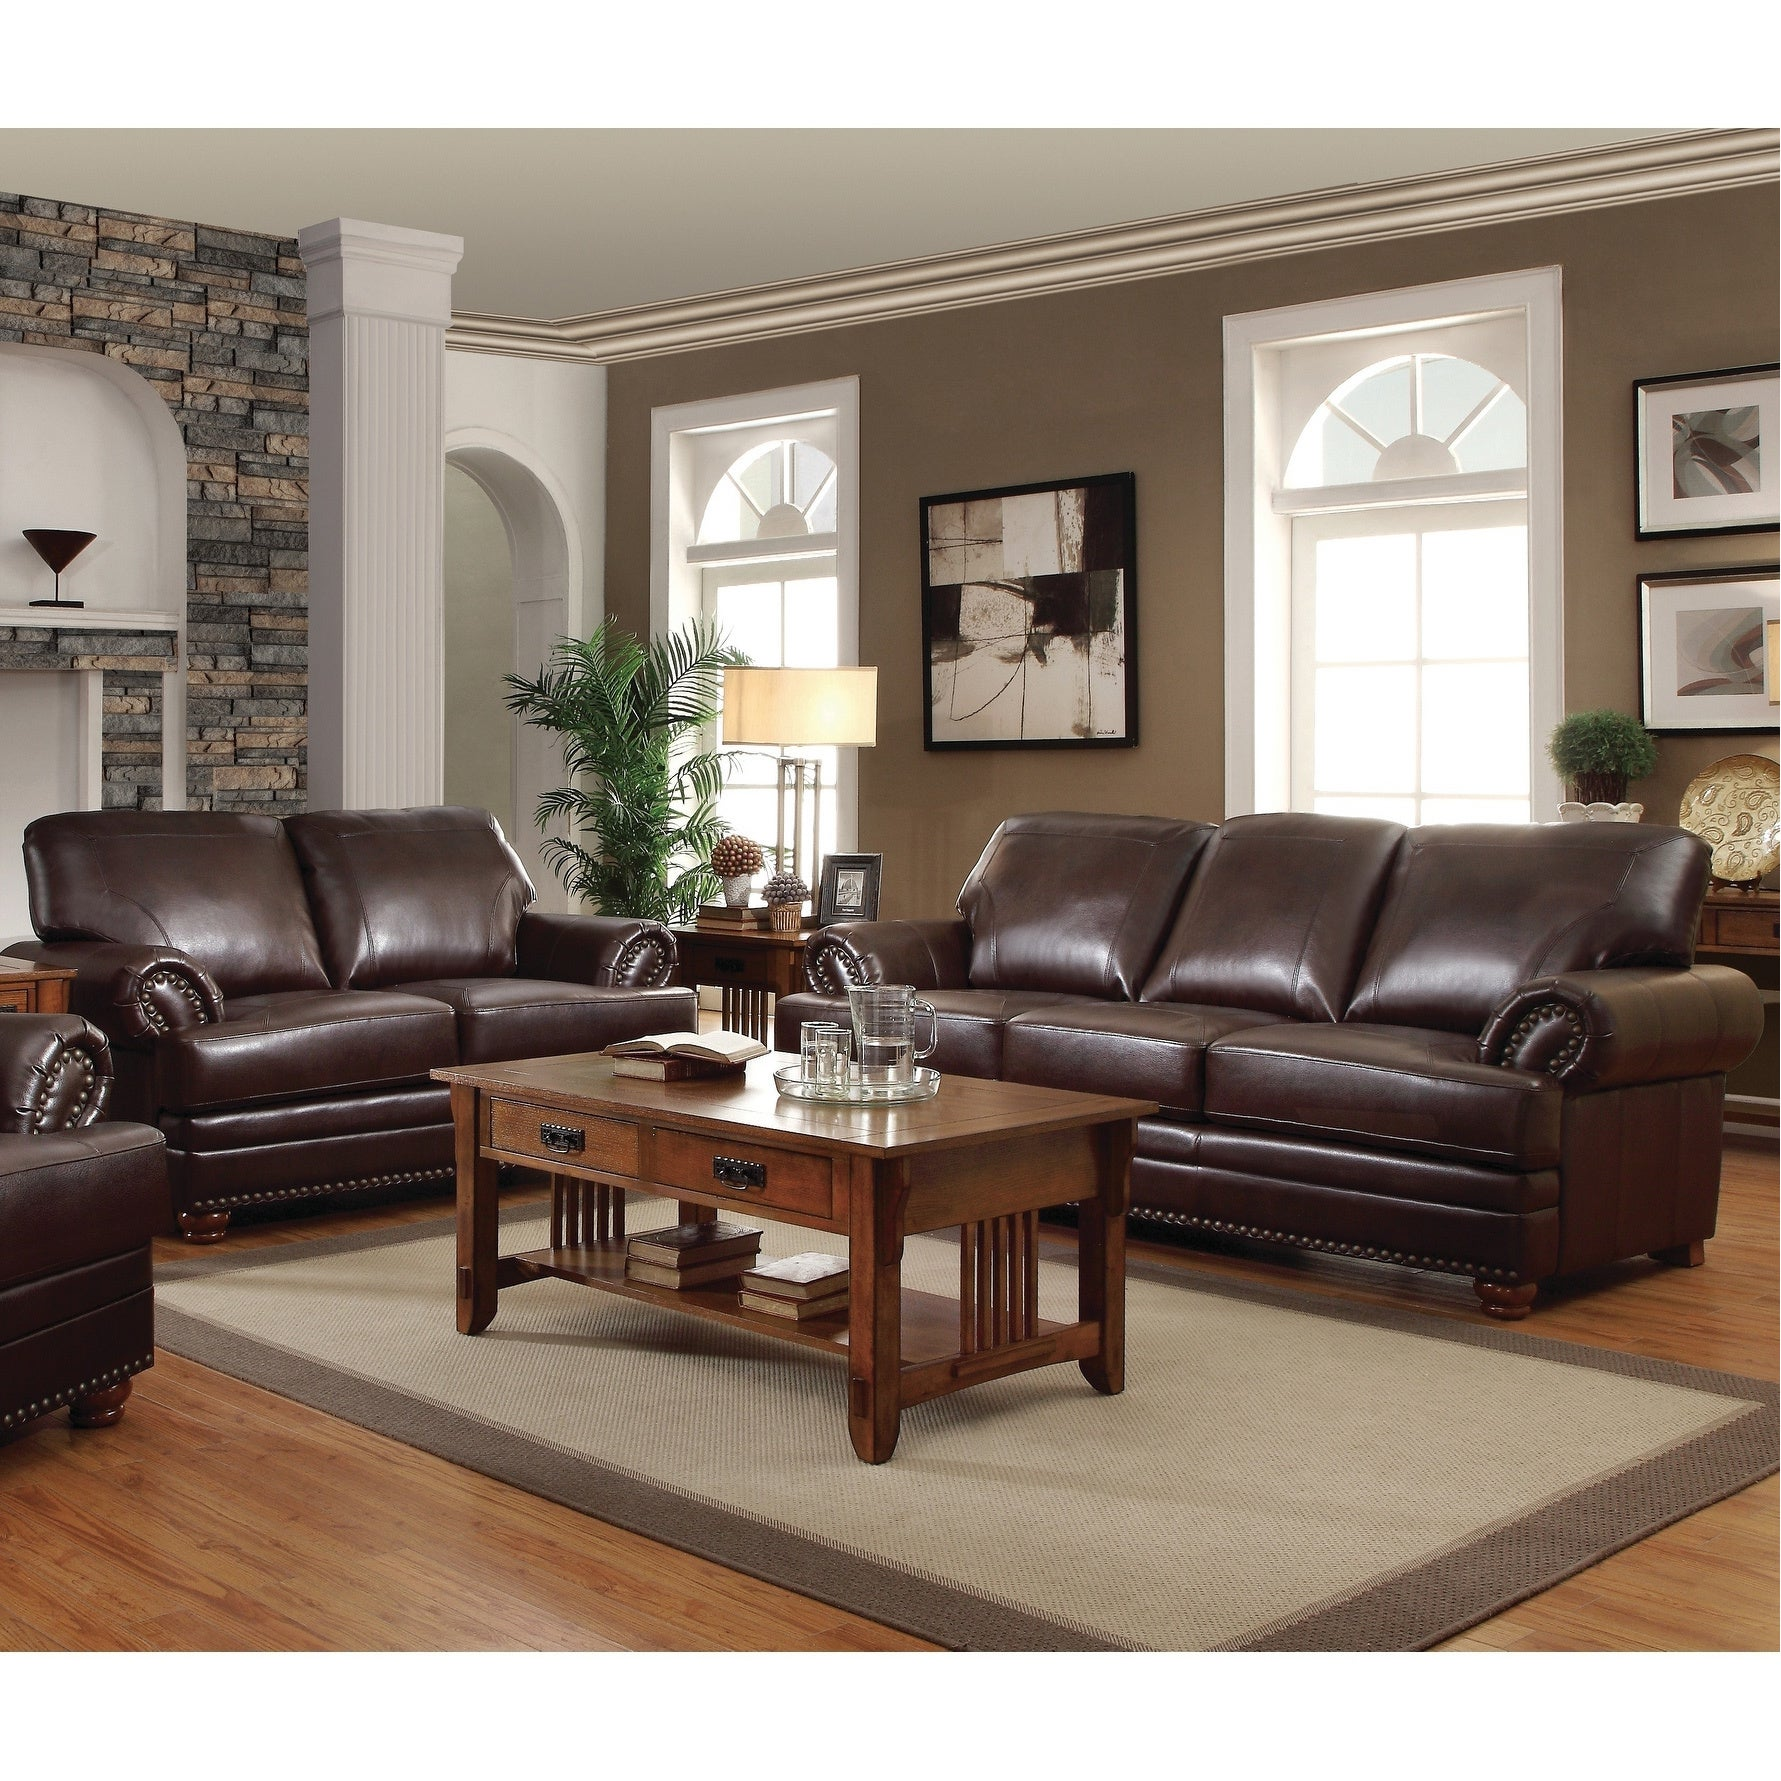 Colton Brown 2 Piece Leather Living Room Set N A